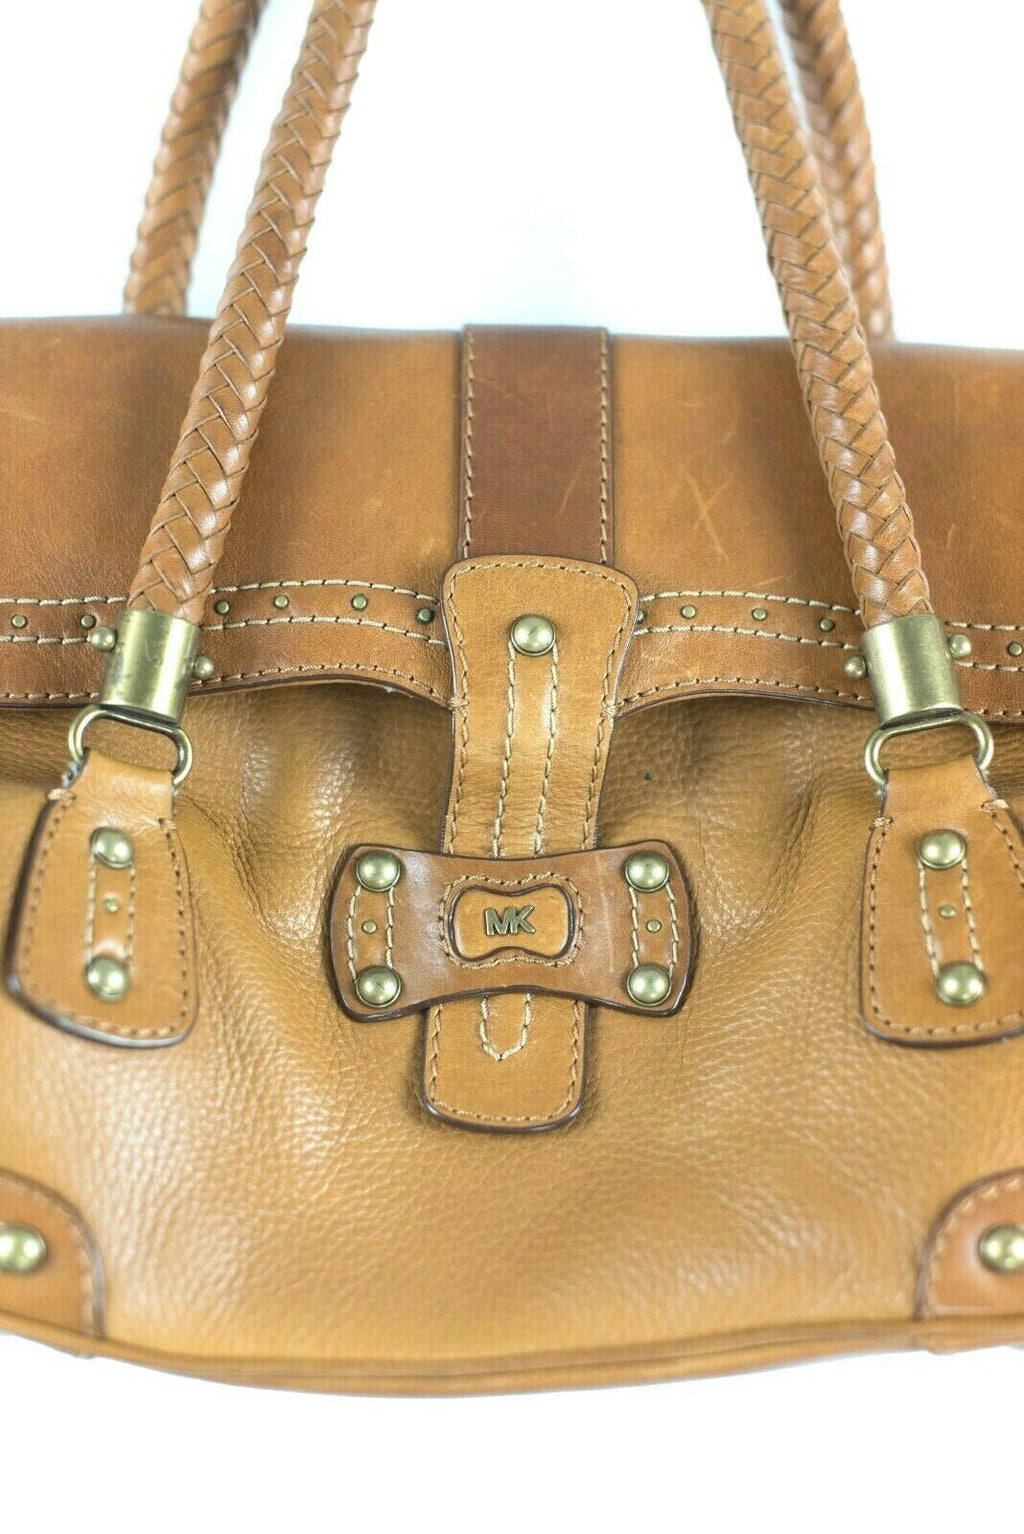 Michael Kors Womens Tan Brown Bag Leather Fold Over Flap Woven Strap Purse Tote